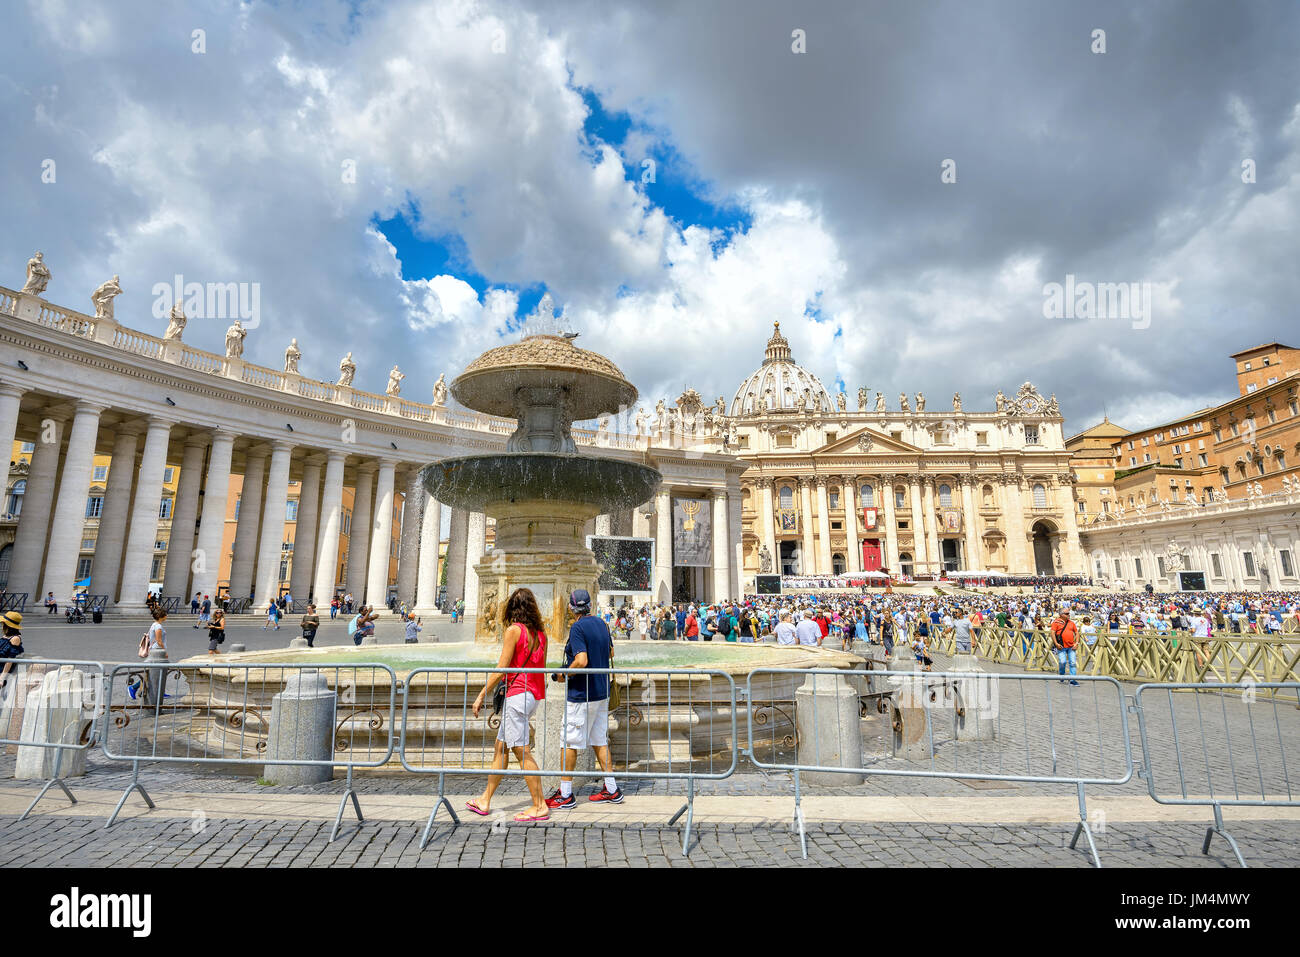 Many people celebrate and participate in a traditional solemn ceremony in feast day of St. Peter and St. Paul. Vatican, Rome, Italy - Stock Image